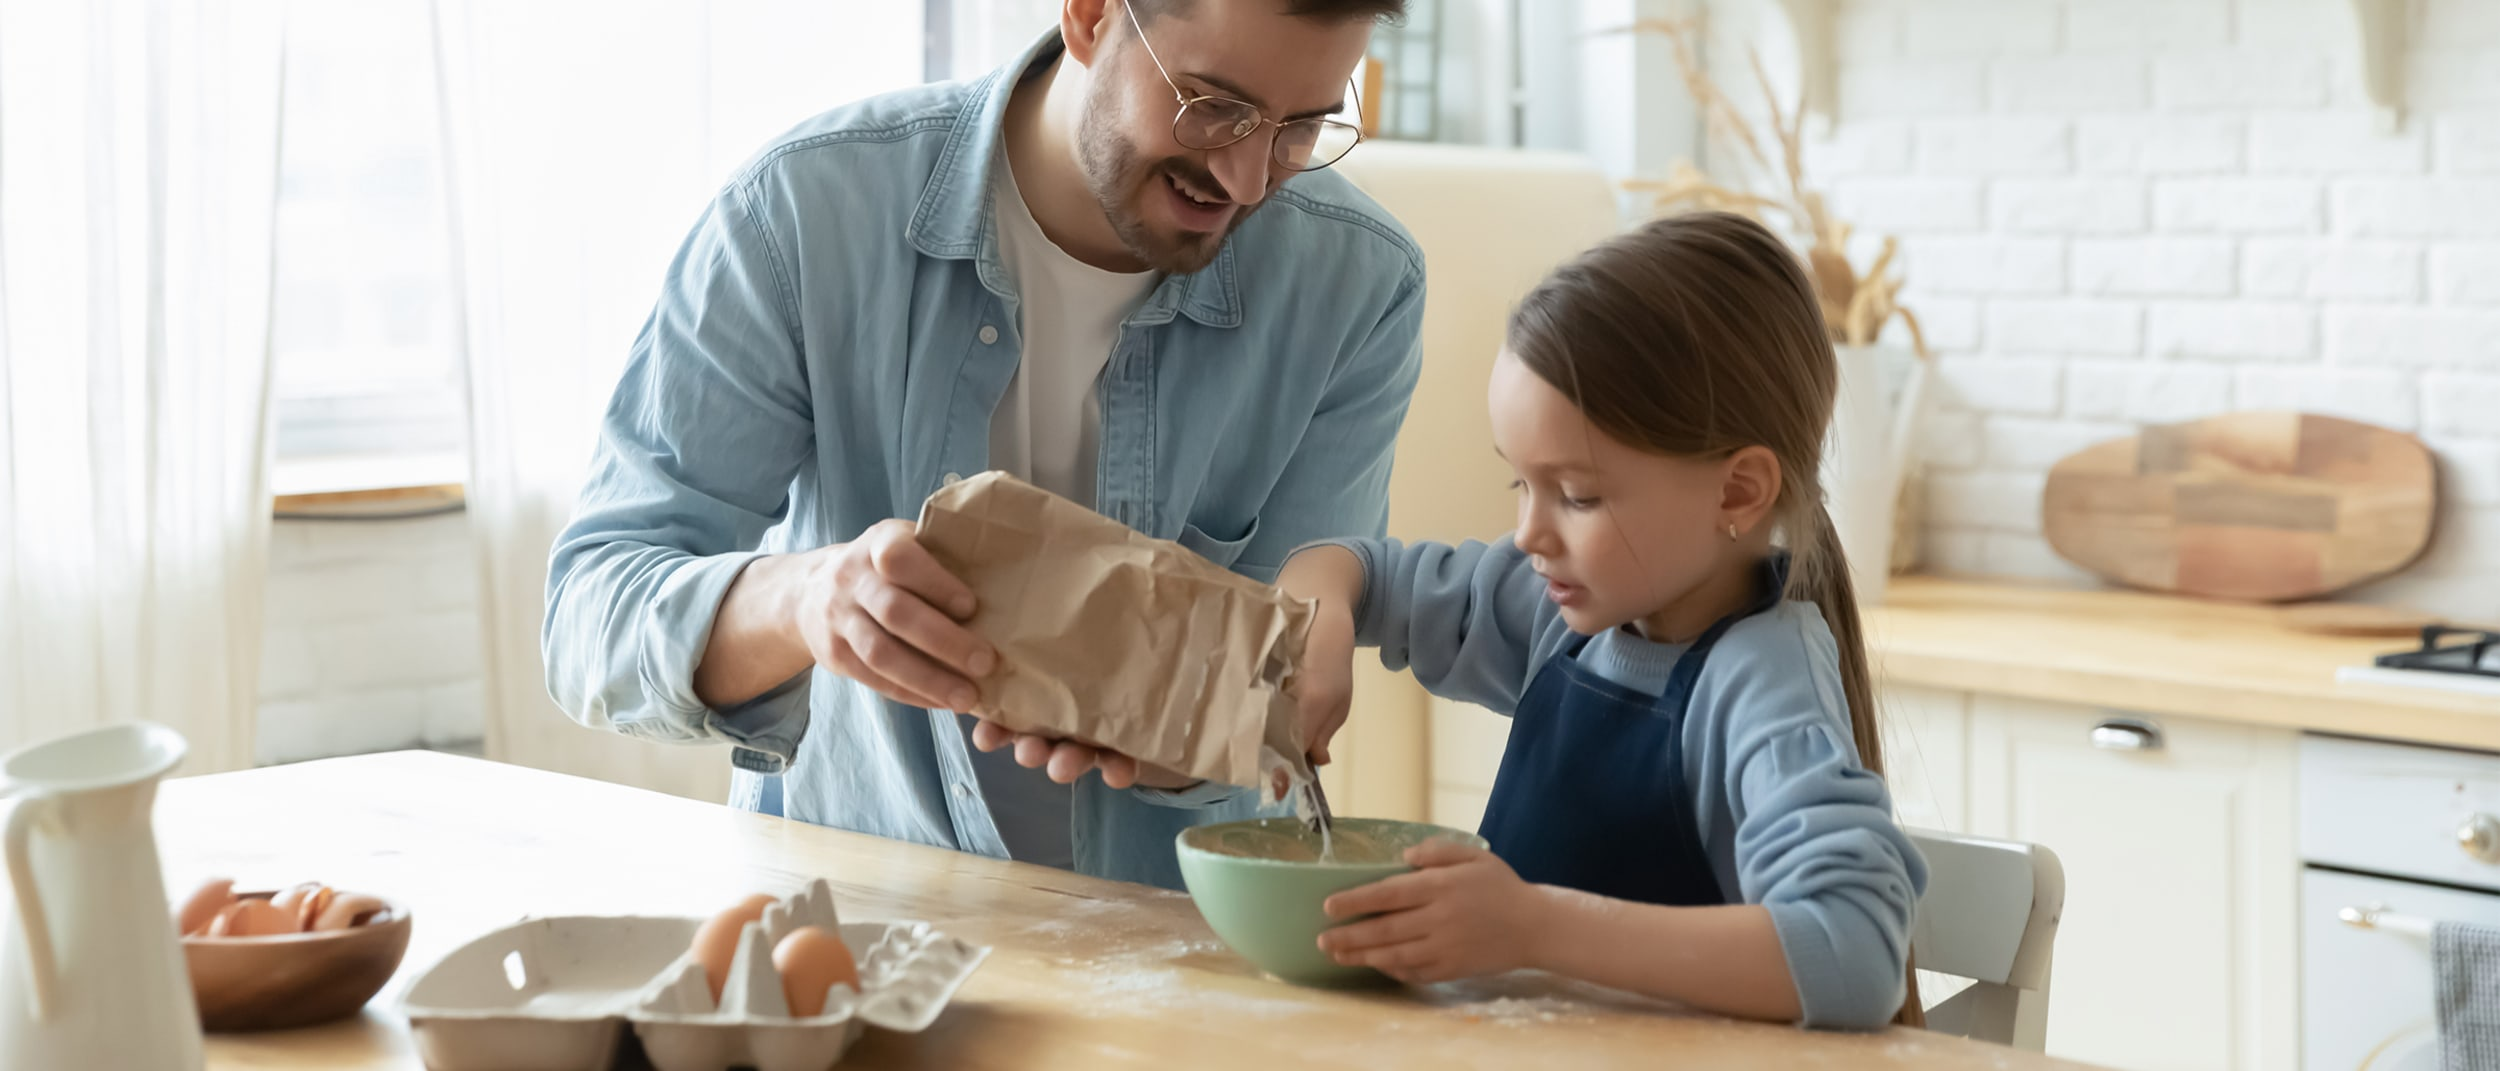 Kids in the Kitchen: 4 healthy snacks kids can make by themselves